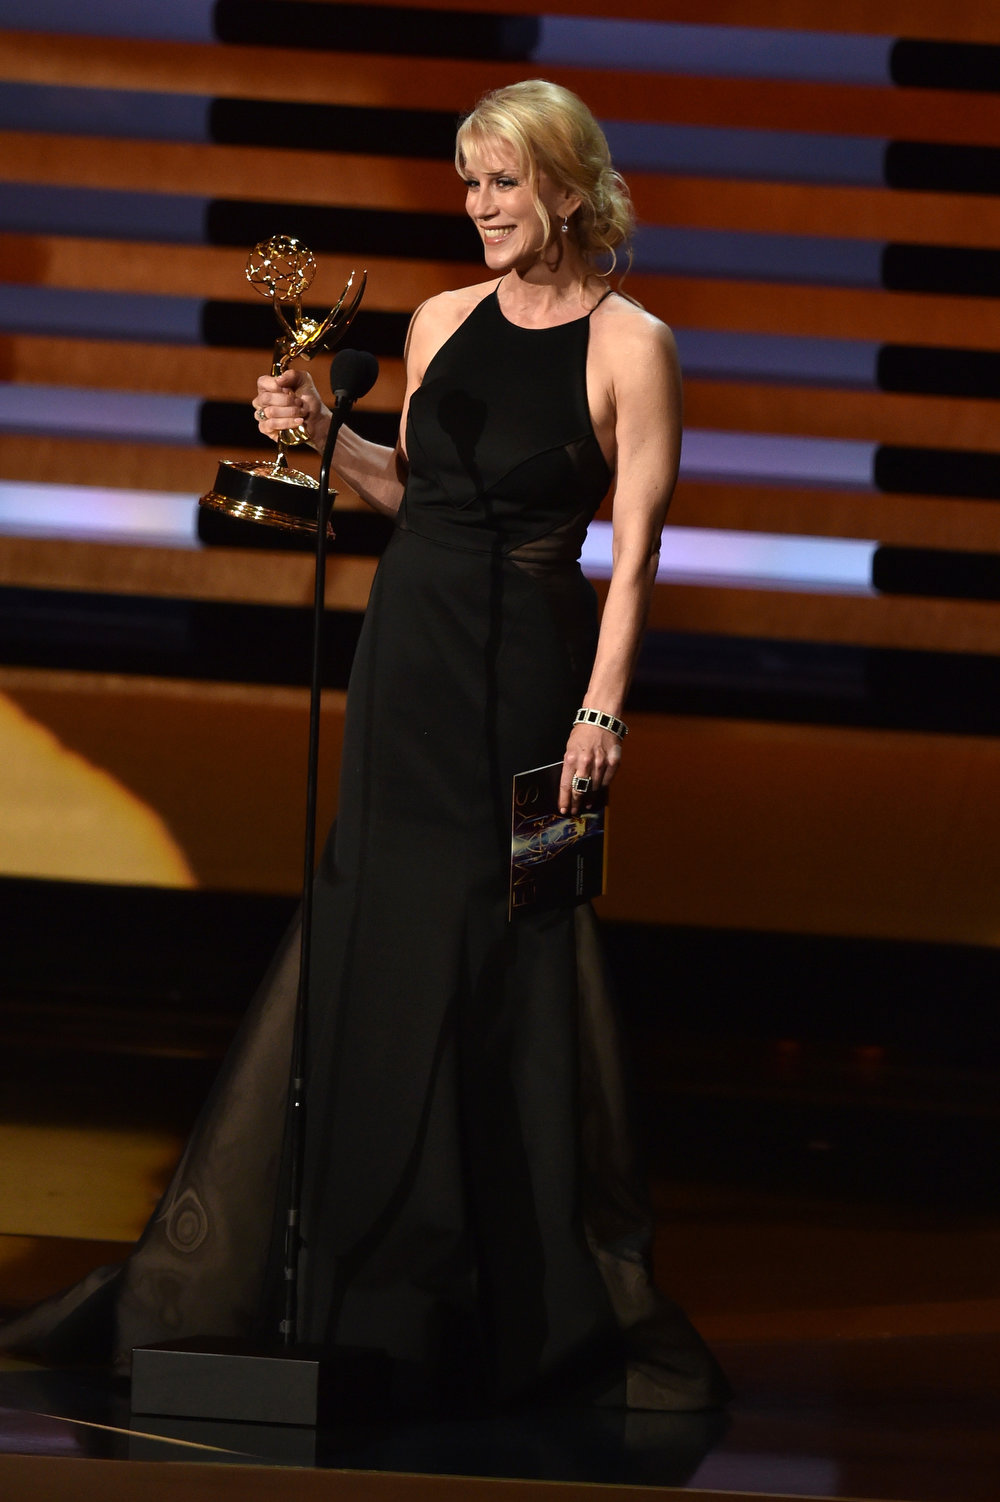 . Writer Moira Walley-Beckett accepts Outstanding Writing for a Drama Series for the \'Breaking Bad\' episode \'Ozymandias\' onstage at the 66th Annual Primetime Emmy Awards held at Nokia Theatre L.A. Live on August 25, 2014 in Los Angeles, California.  (Photo by Kevin Winter/Getty Images)